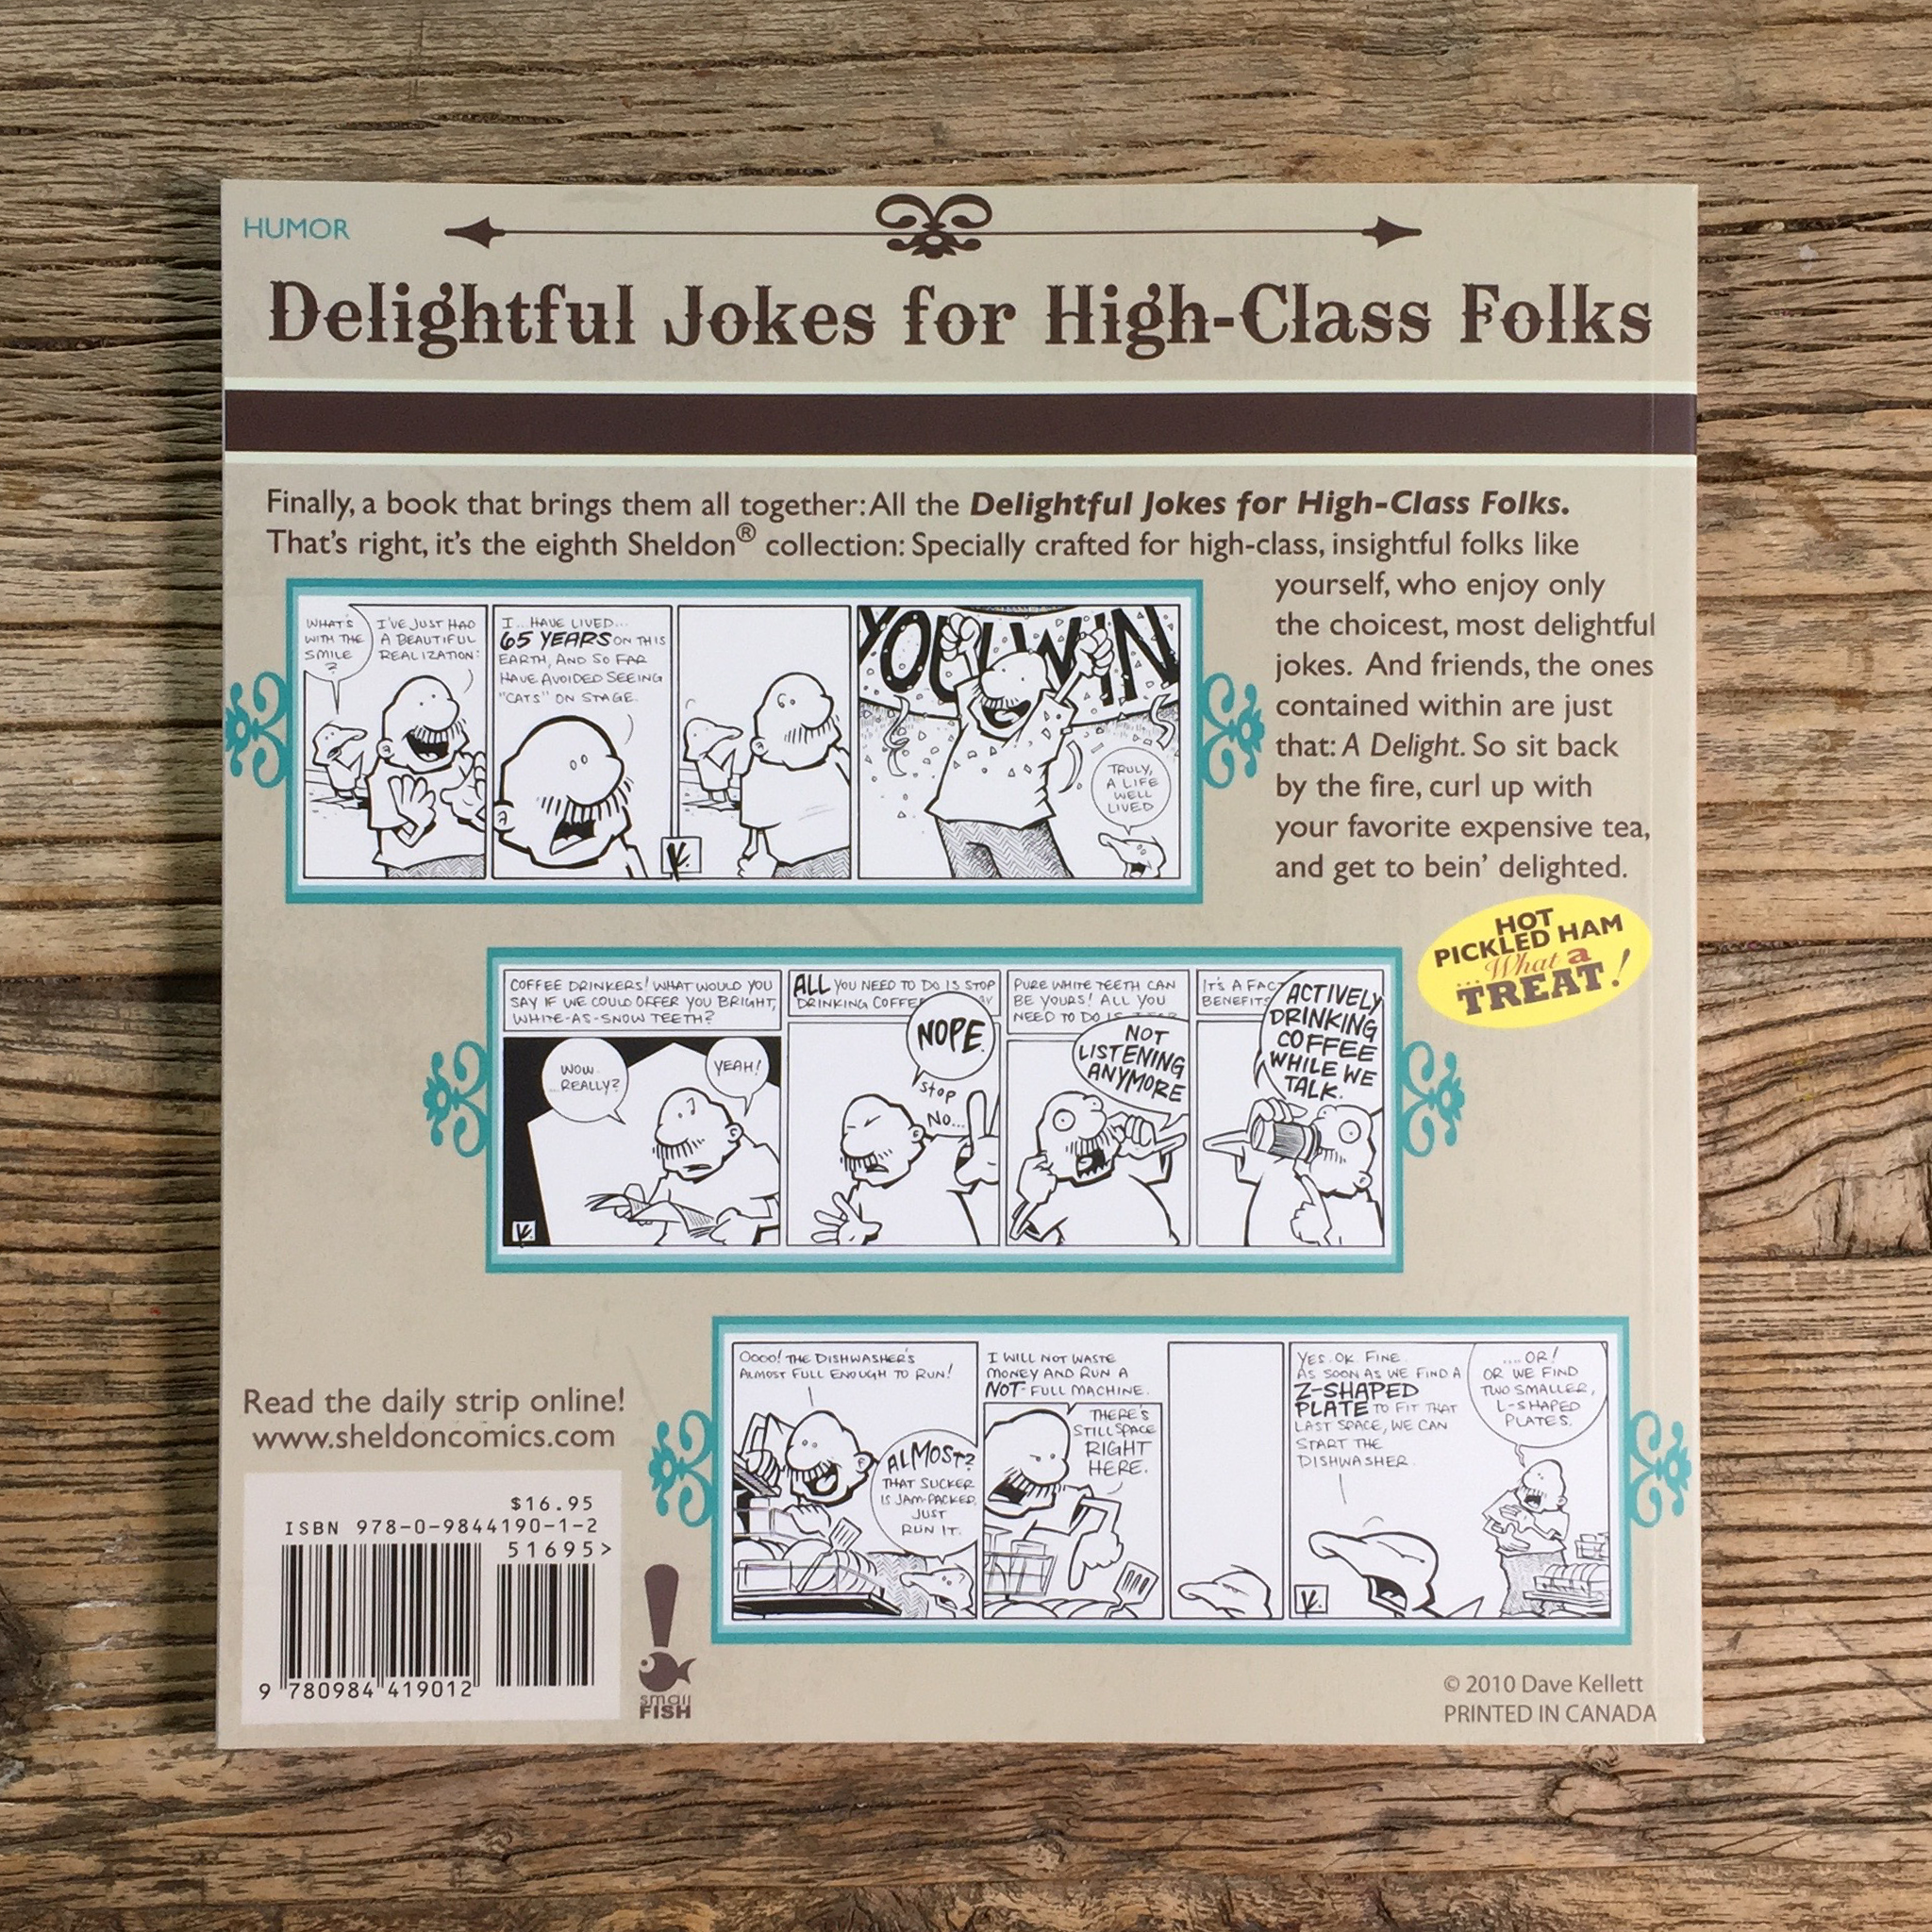 BOOK 8: Delightful Jokes for High-Class Folks